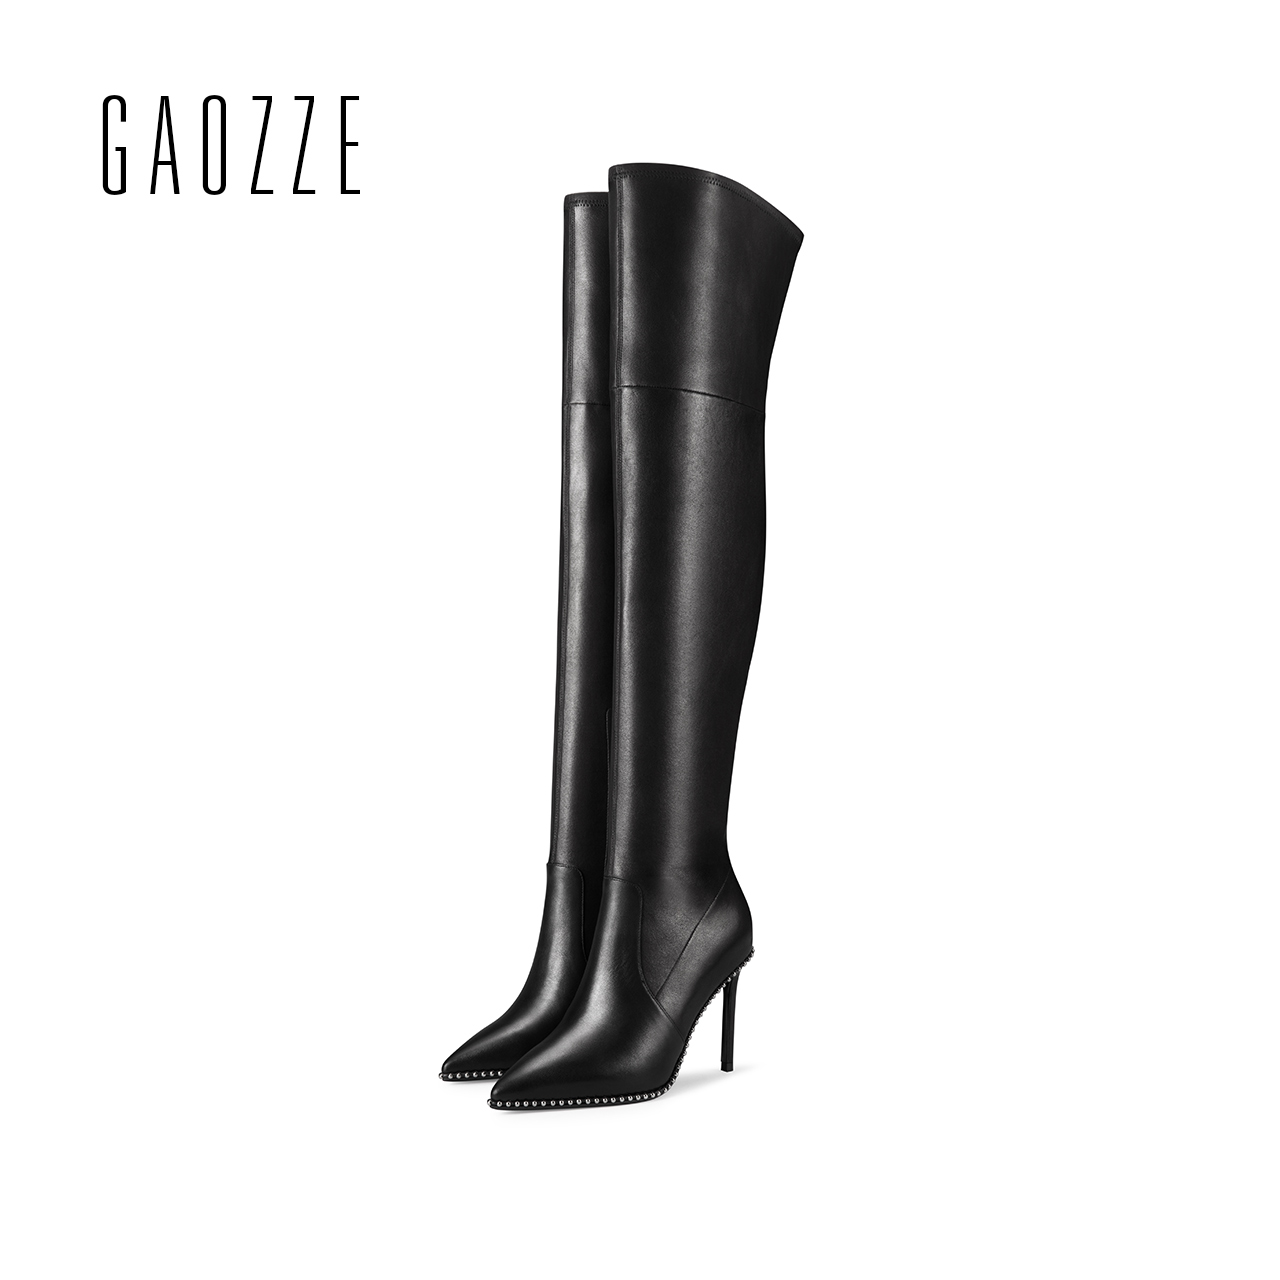 GAOZZE women leather boots 2017 autumn winter new pointed sexy high-heeled sheepskin boots women over knee boots high boots gaozze autumn ankle boots for women 2017 new sexy thin high heeled boots women side zipper fashion pointed toe shoes red boots